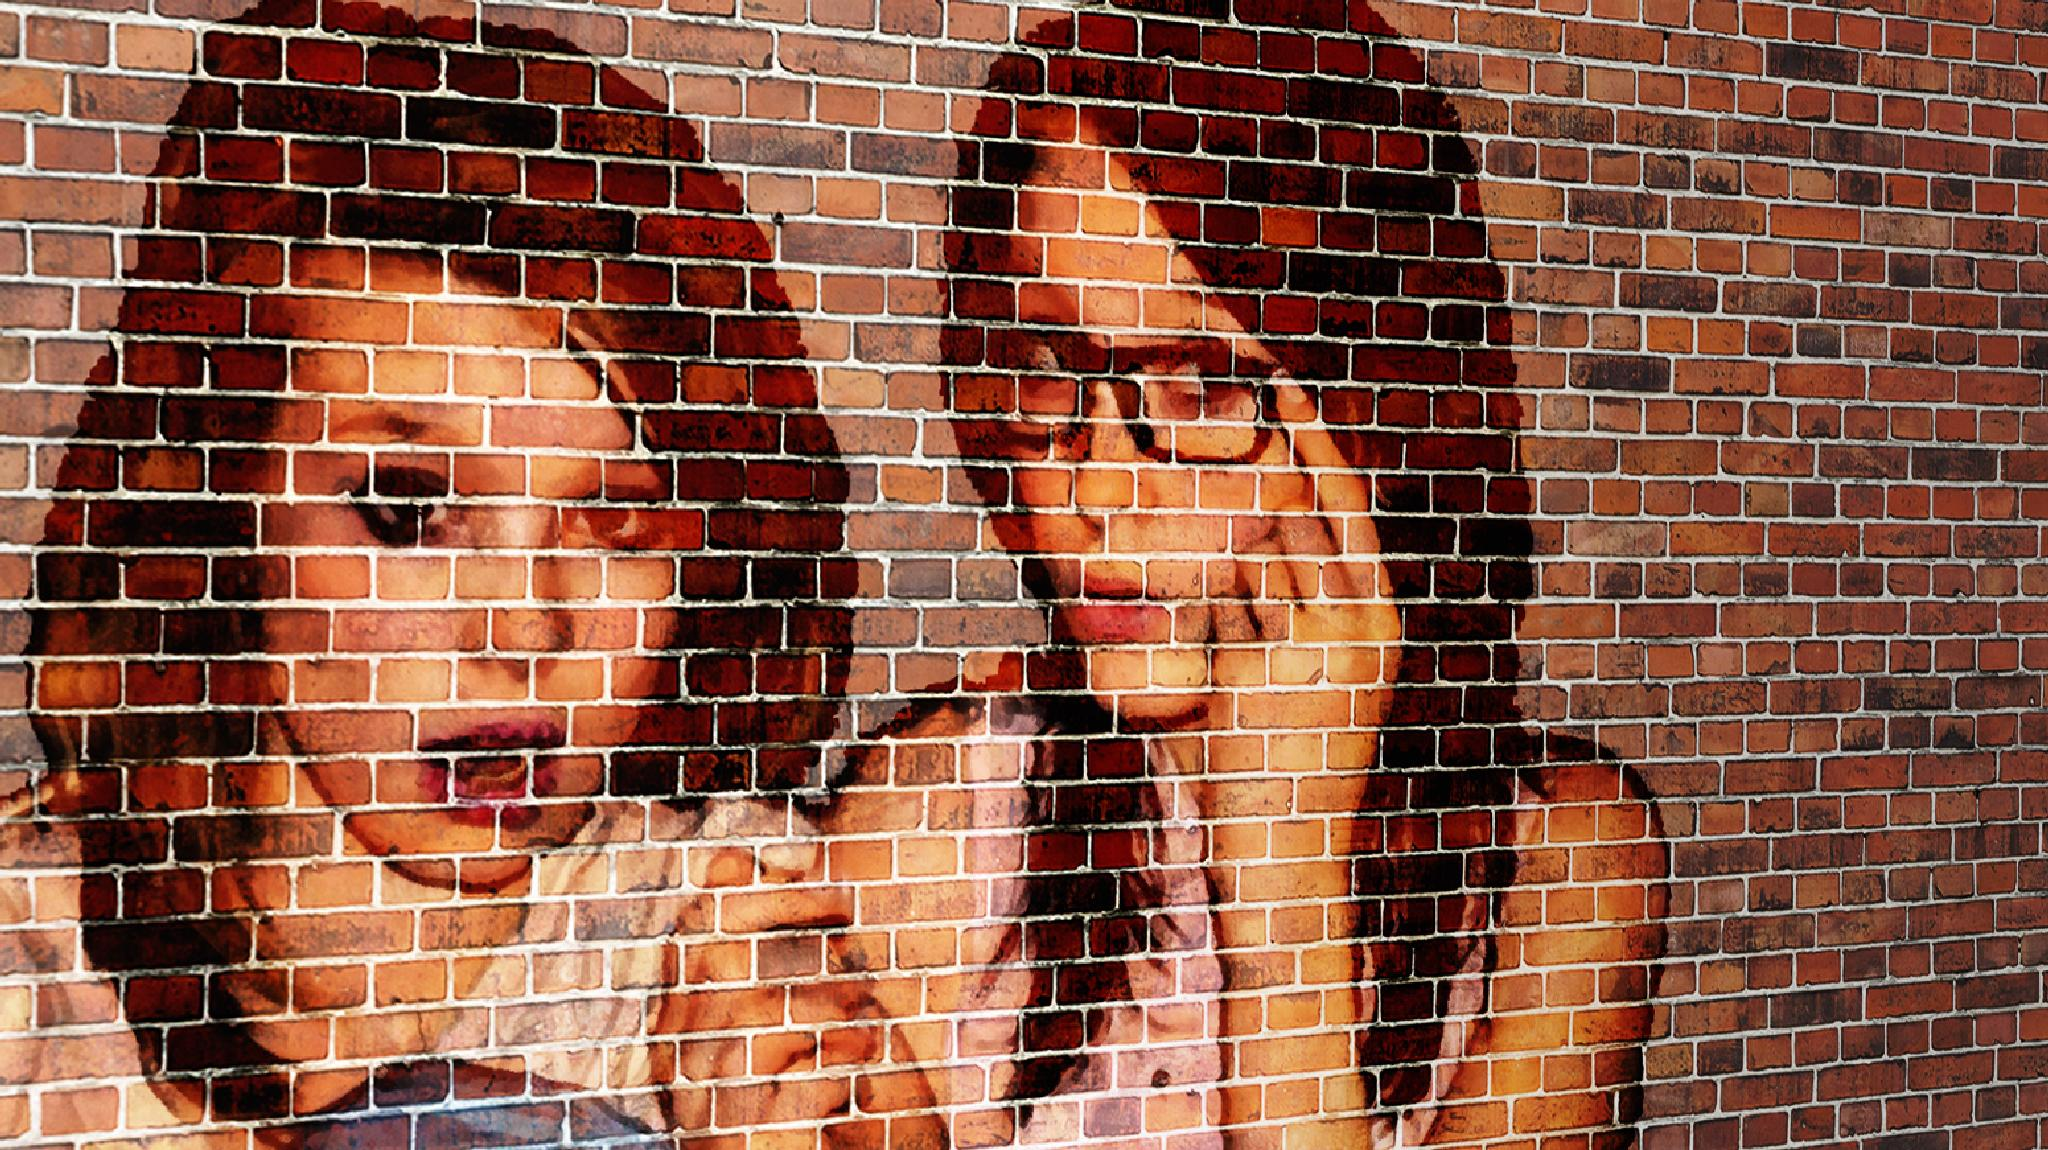 Another brick in the wall by William Hole